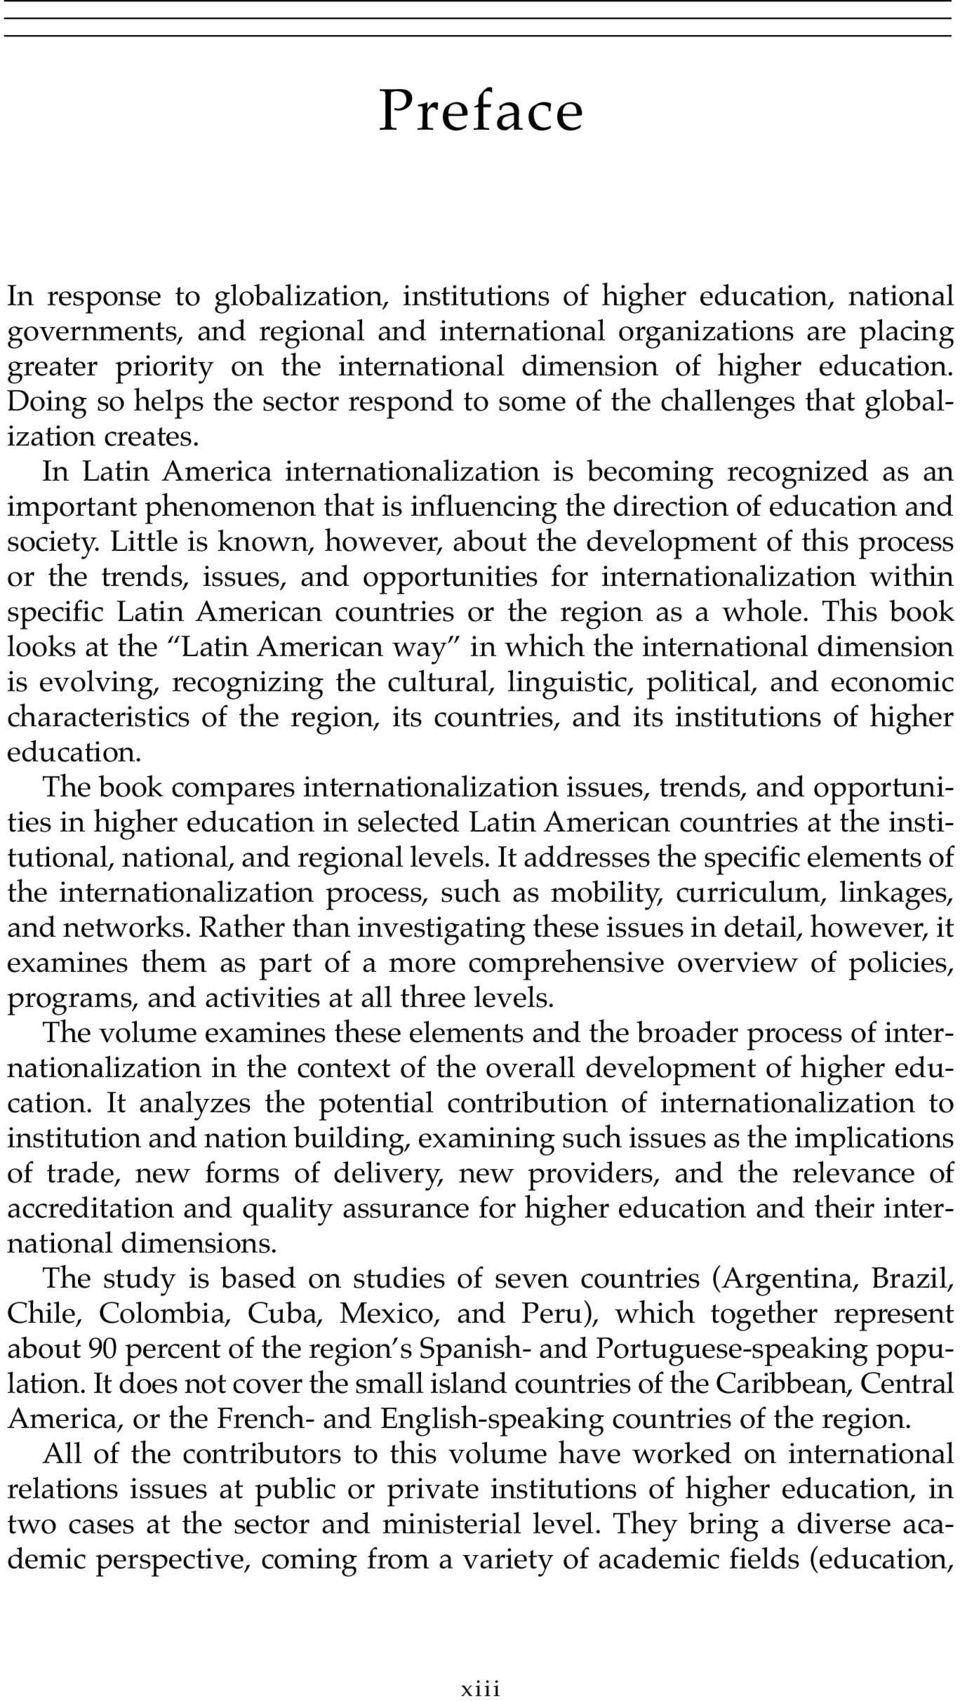 In Latin America internationalization is becoming recognized as an important phenomenon that is influencing the direction of education and society.